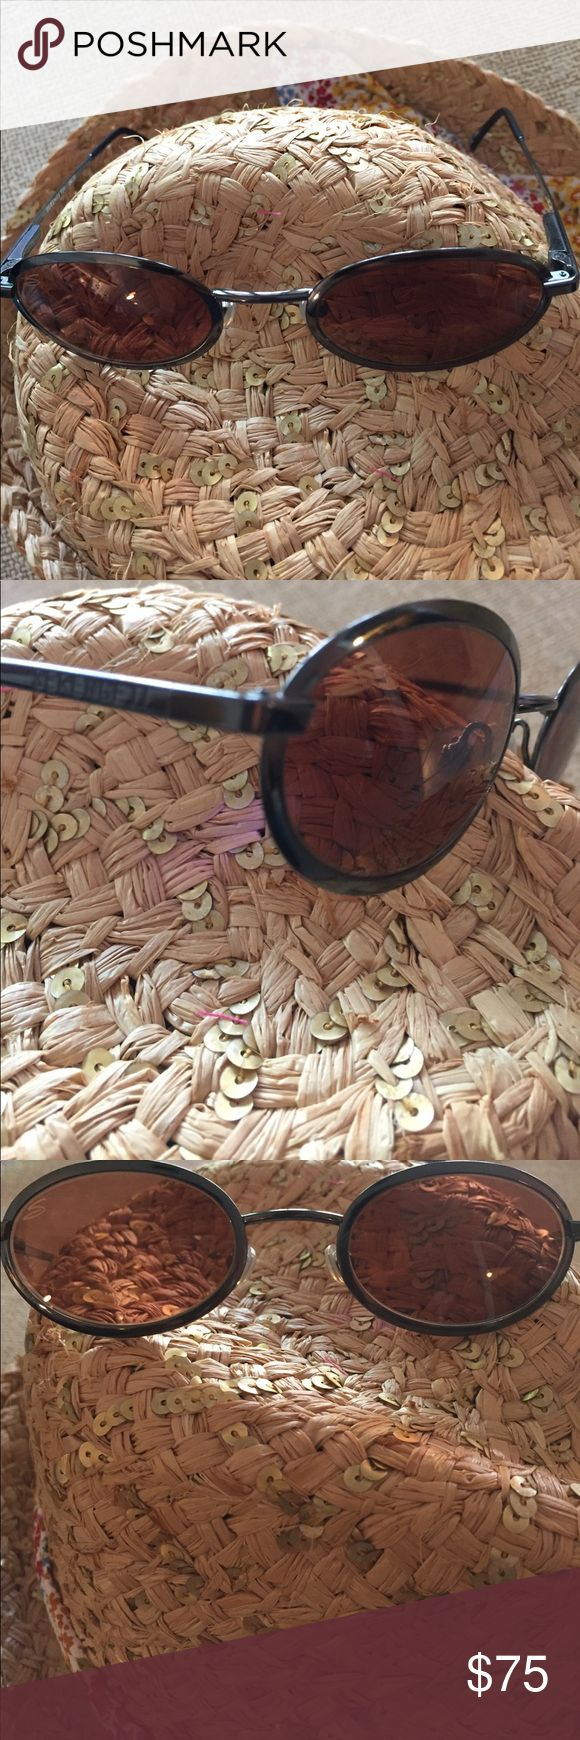 Serengeti sunglasses. Authentic. Gorgeous. Guarantee authenticity and in mint condition. Original style and comfort Serengeti Accessories Sunglasses